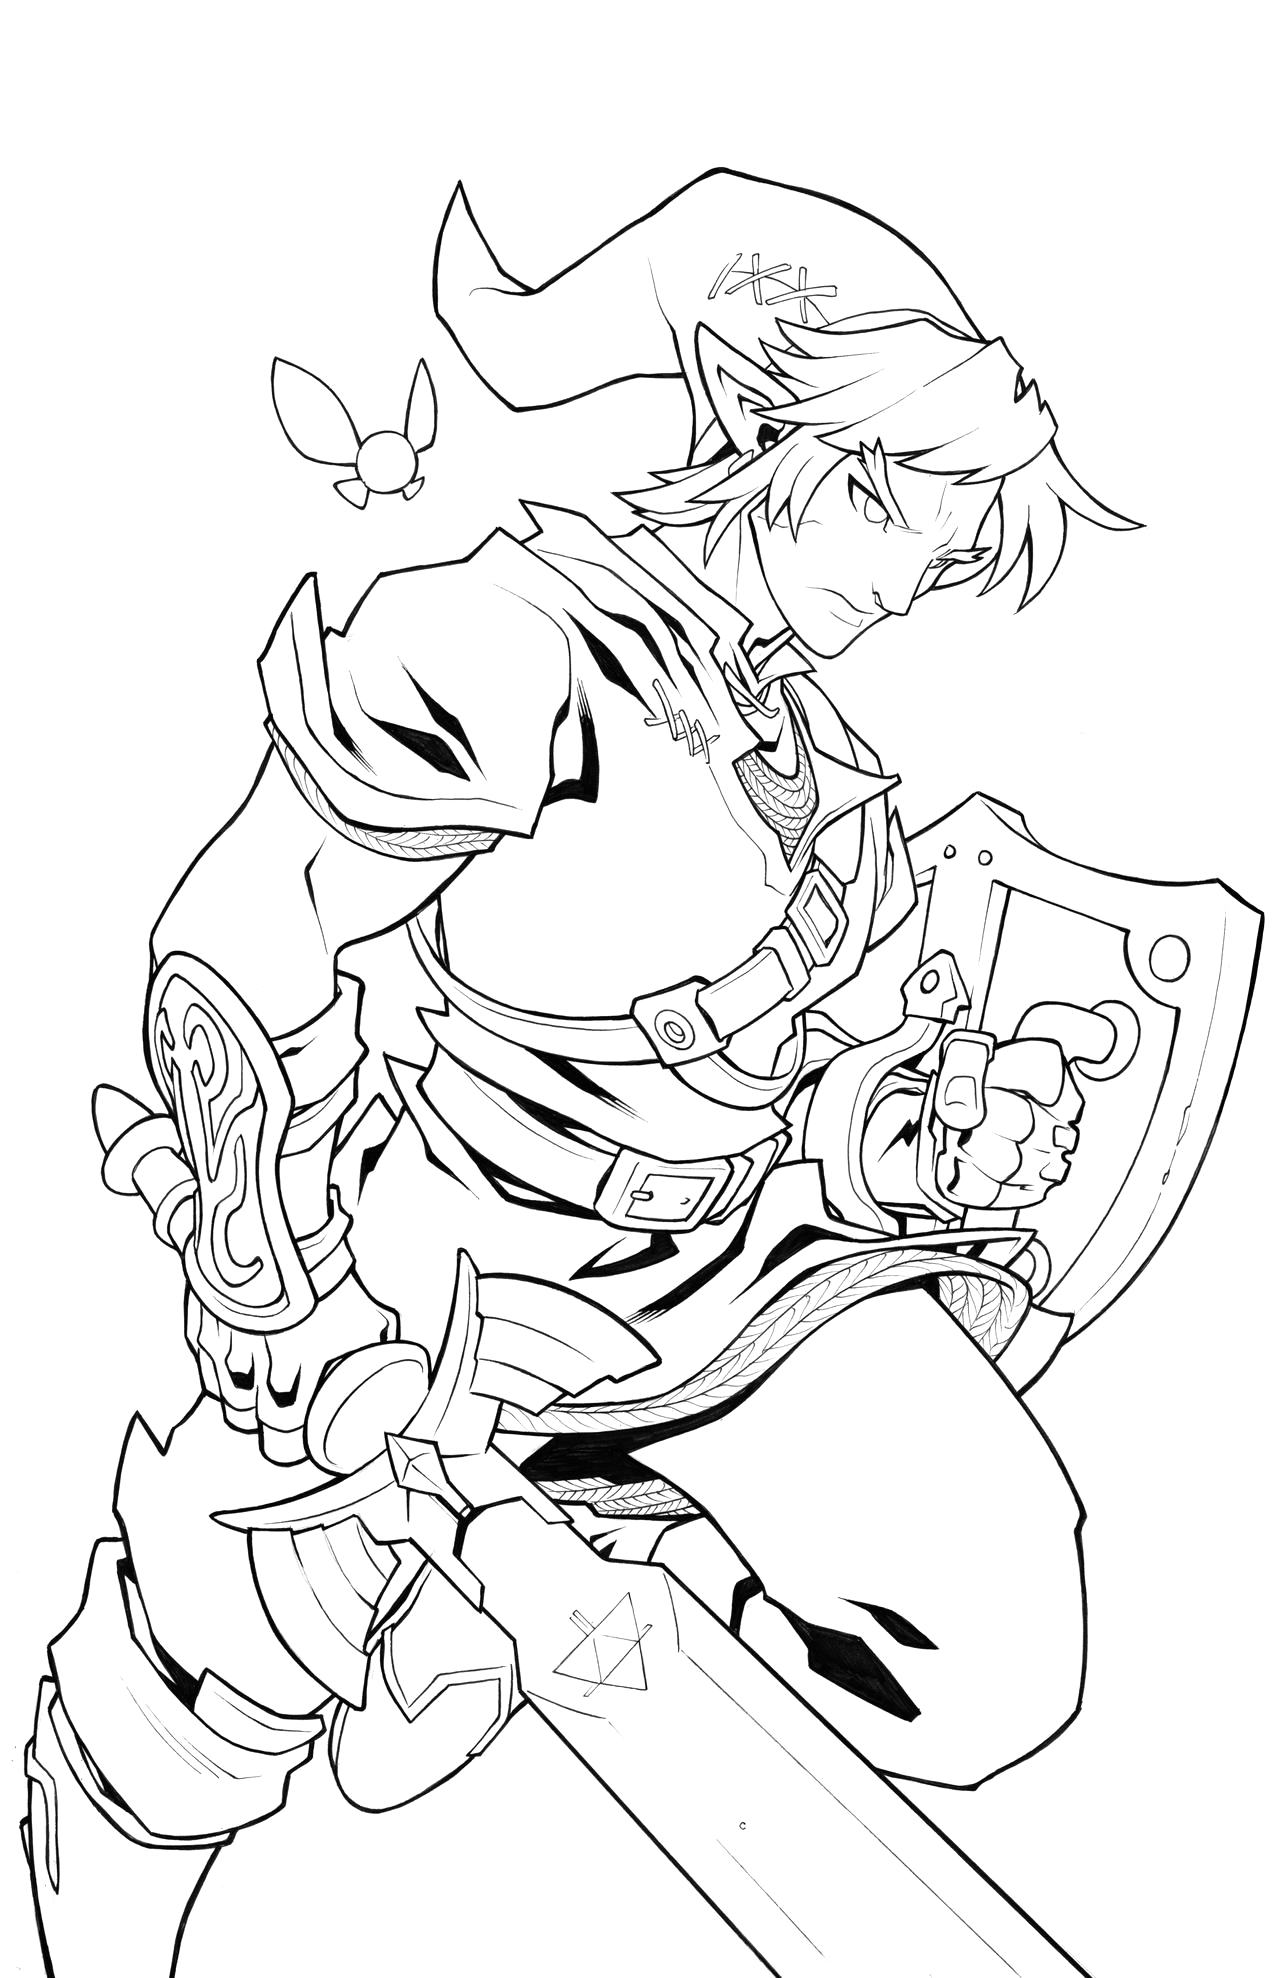 The Legend Of Zelda Breath Of the Wild Coloring Pages Zelda Breath the Wild Pages Coloring Sketch Coloring Page